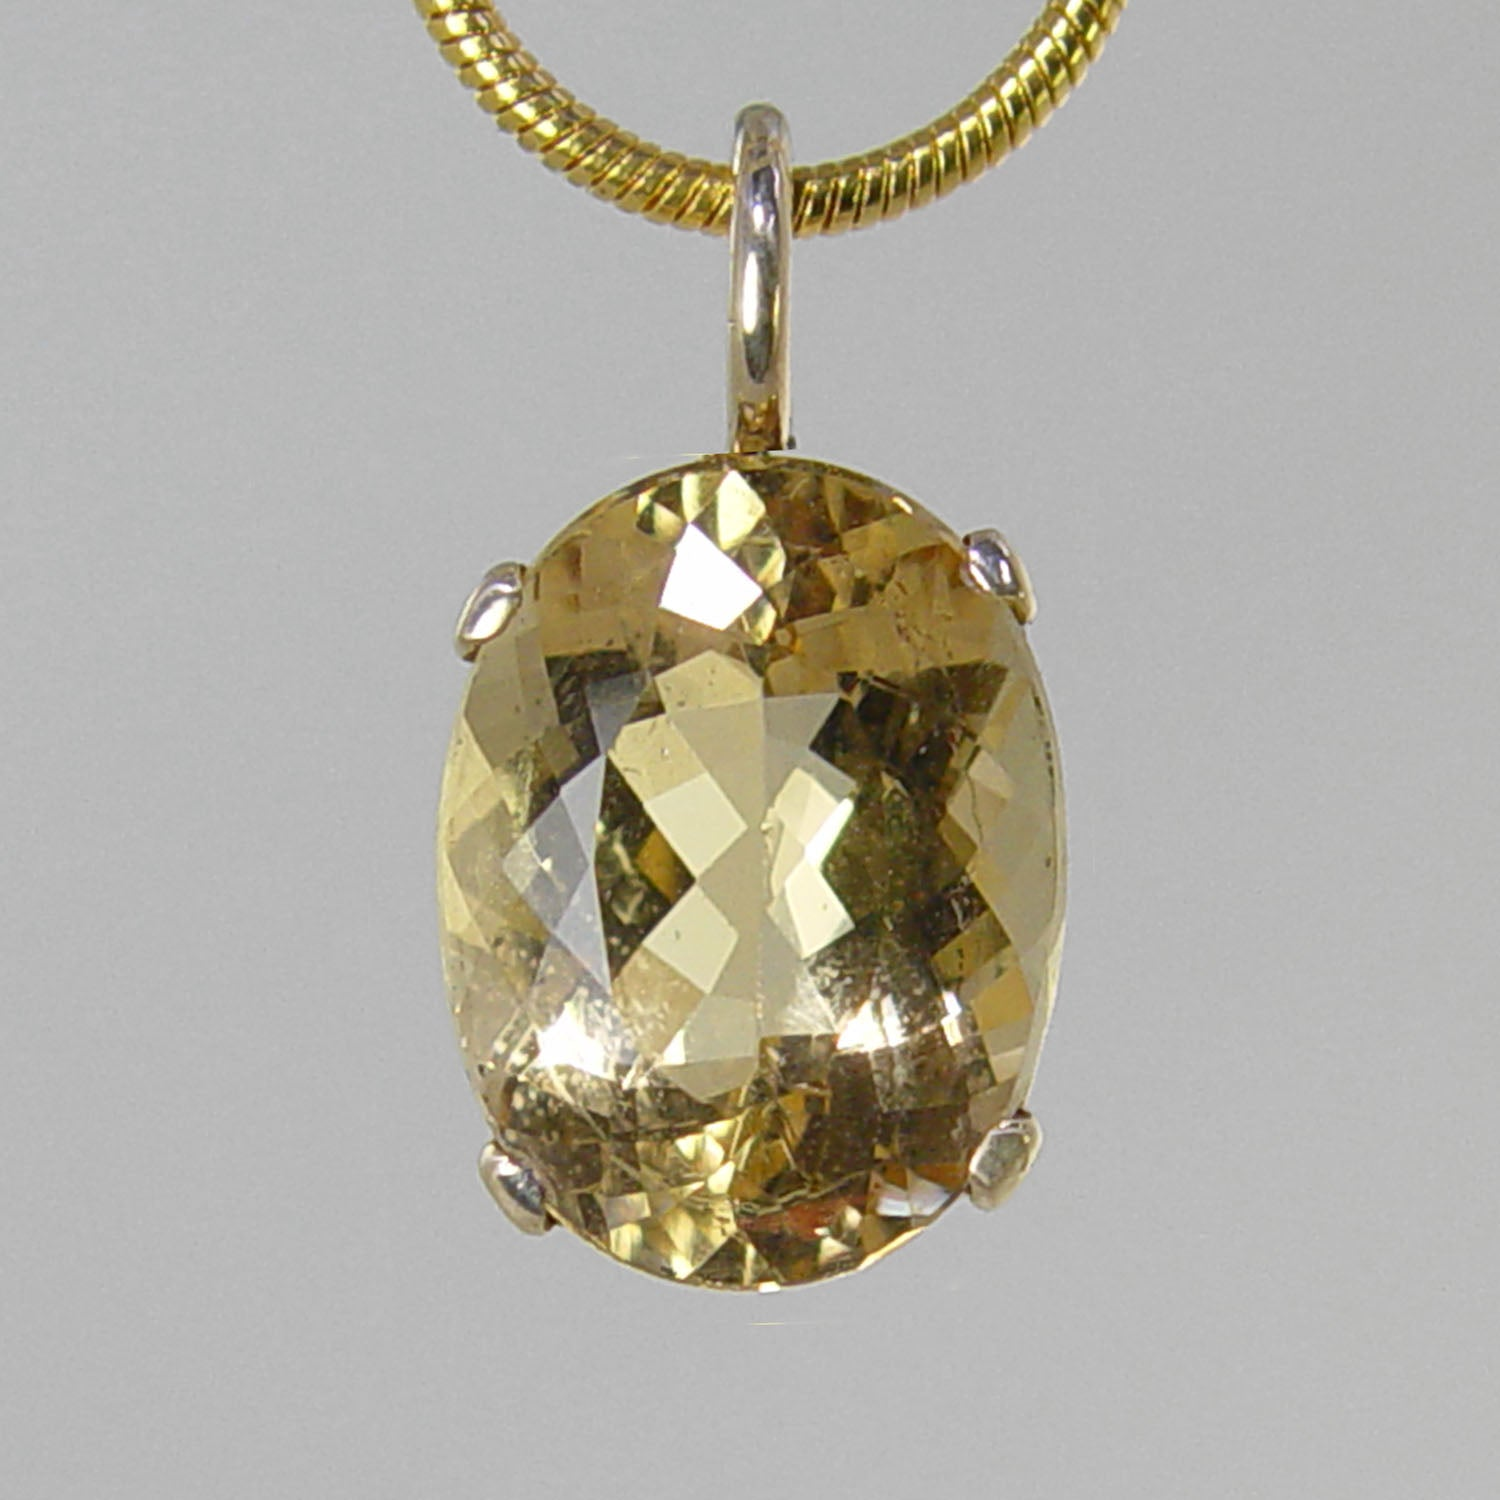 Yellow Beryl 8.24 ct Faceted Oval Prong Set 14KY Gold Pendant